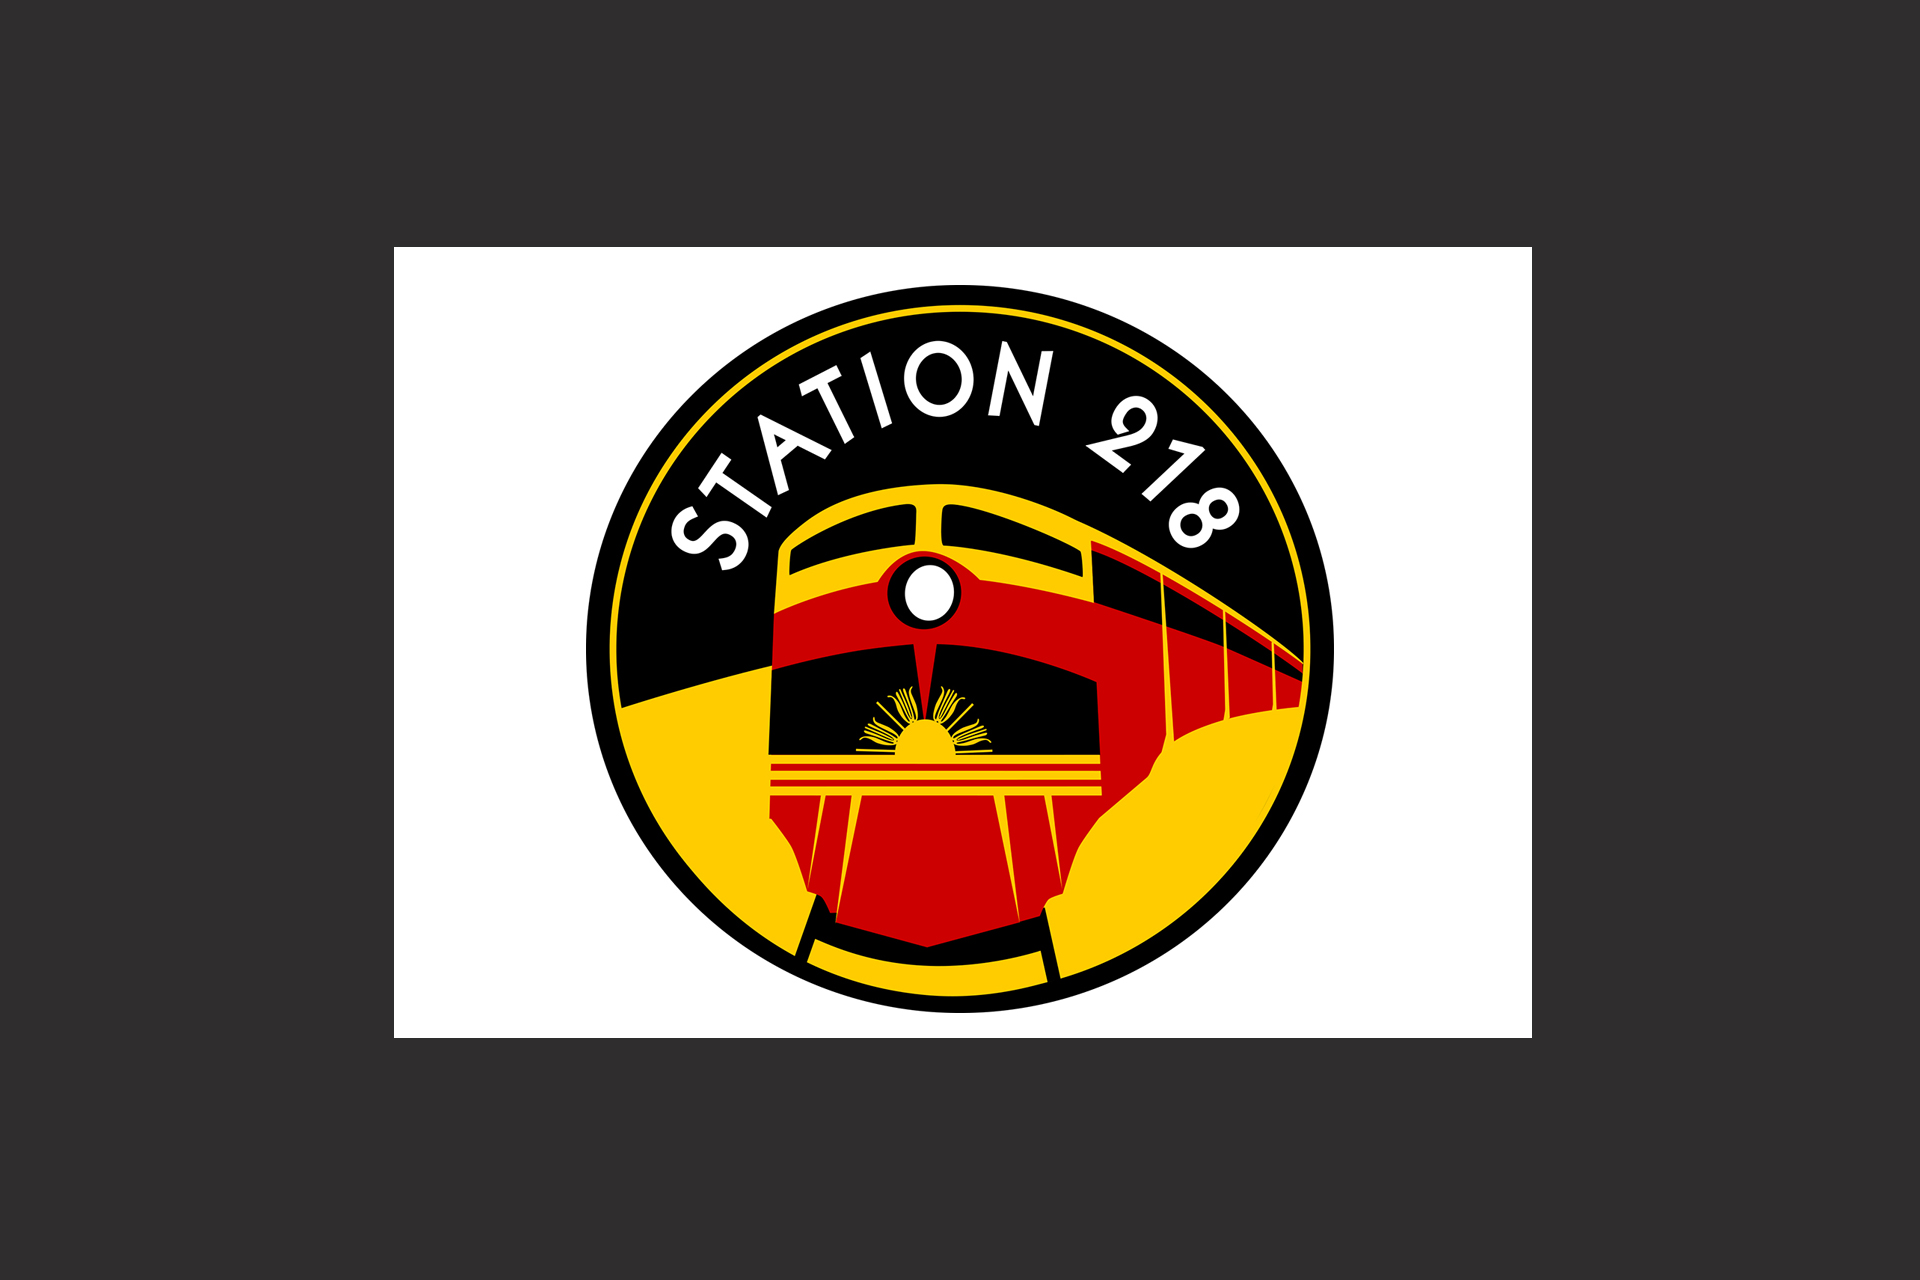 Station218 logo illustration